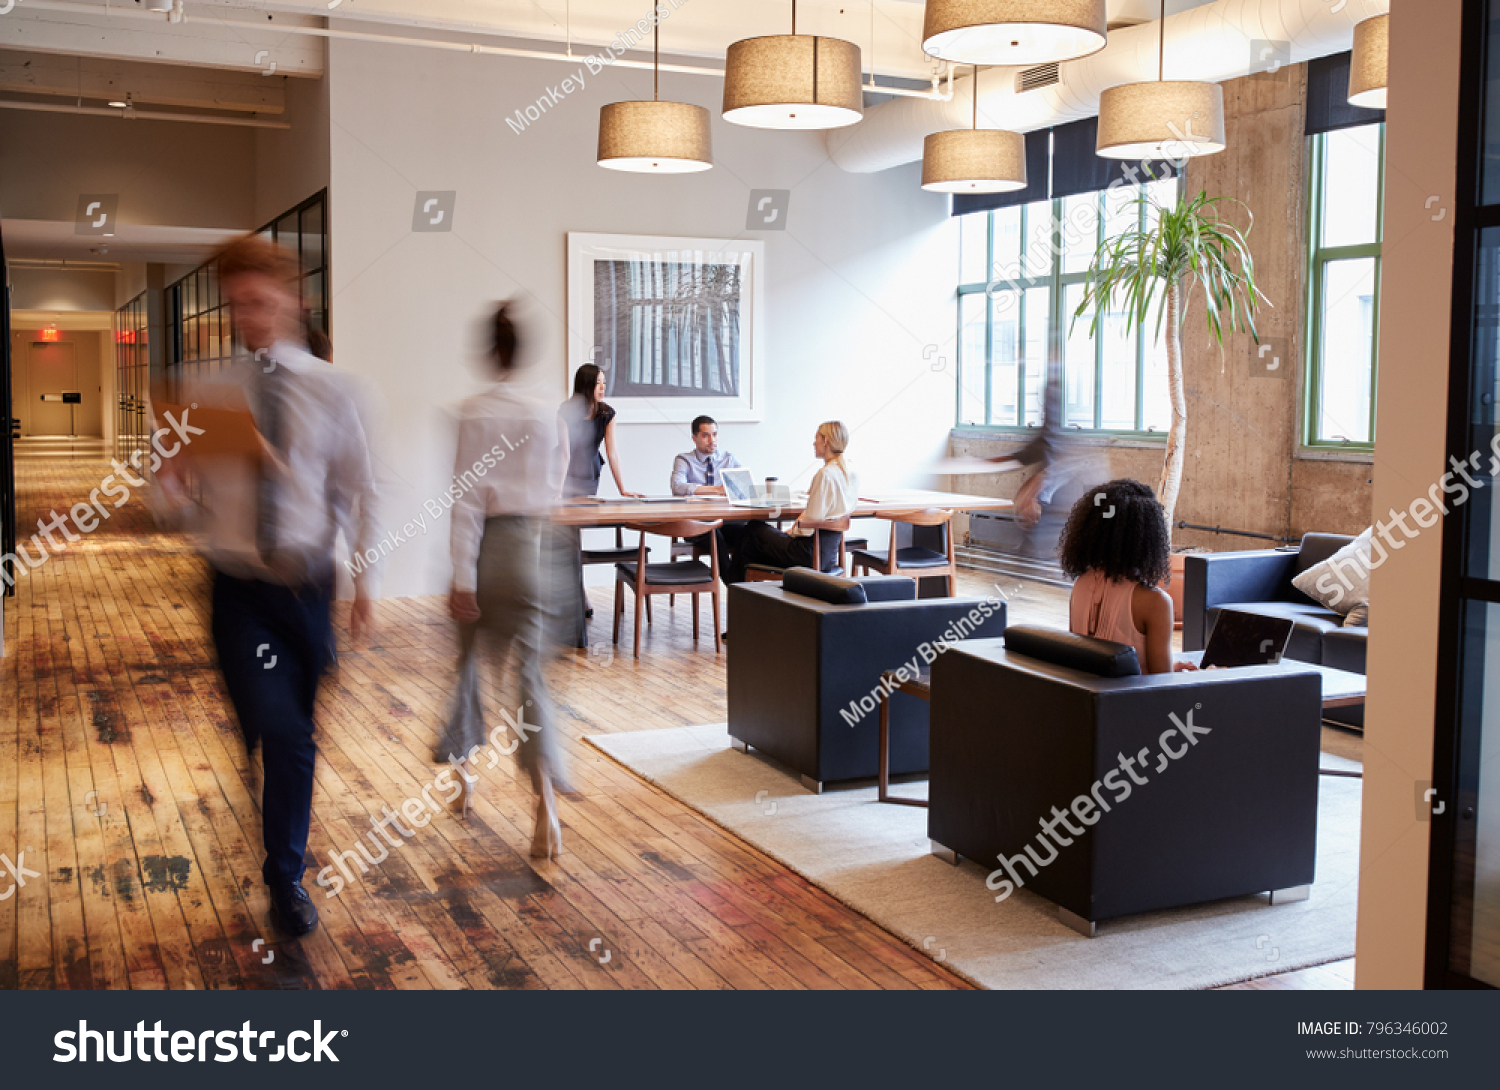 stock-photo-business-people-at-work-in-a-busy-luxury-office-space-796346002.jpg